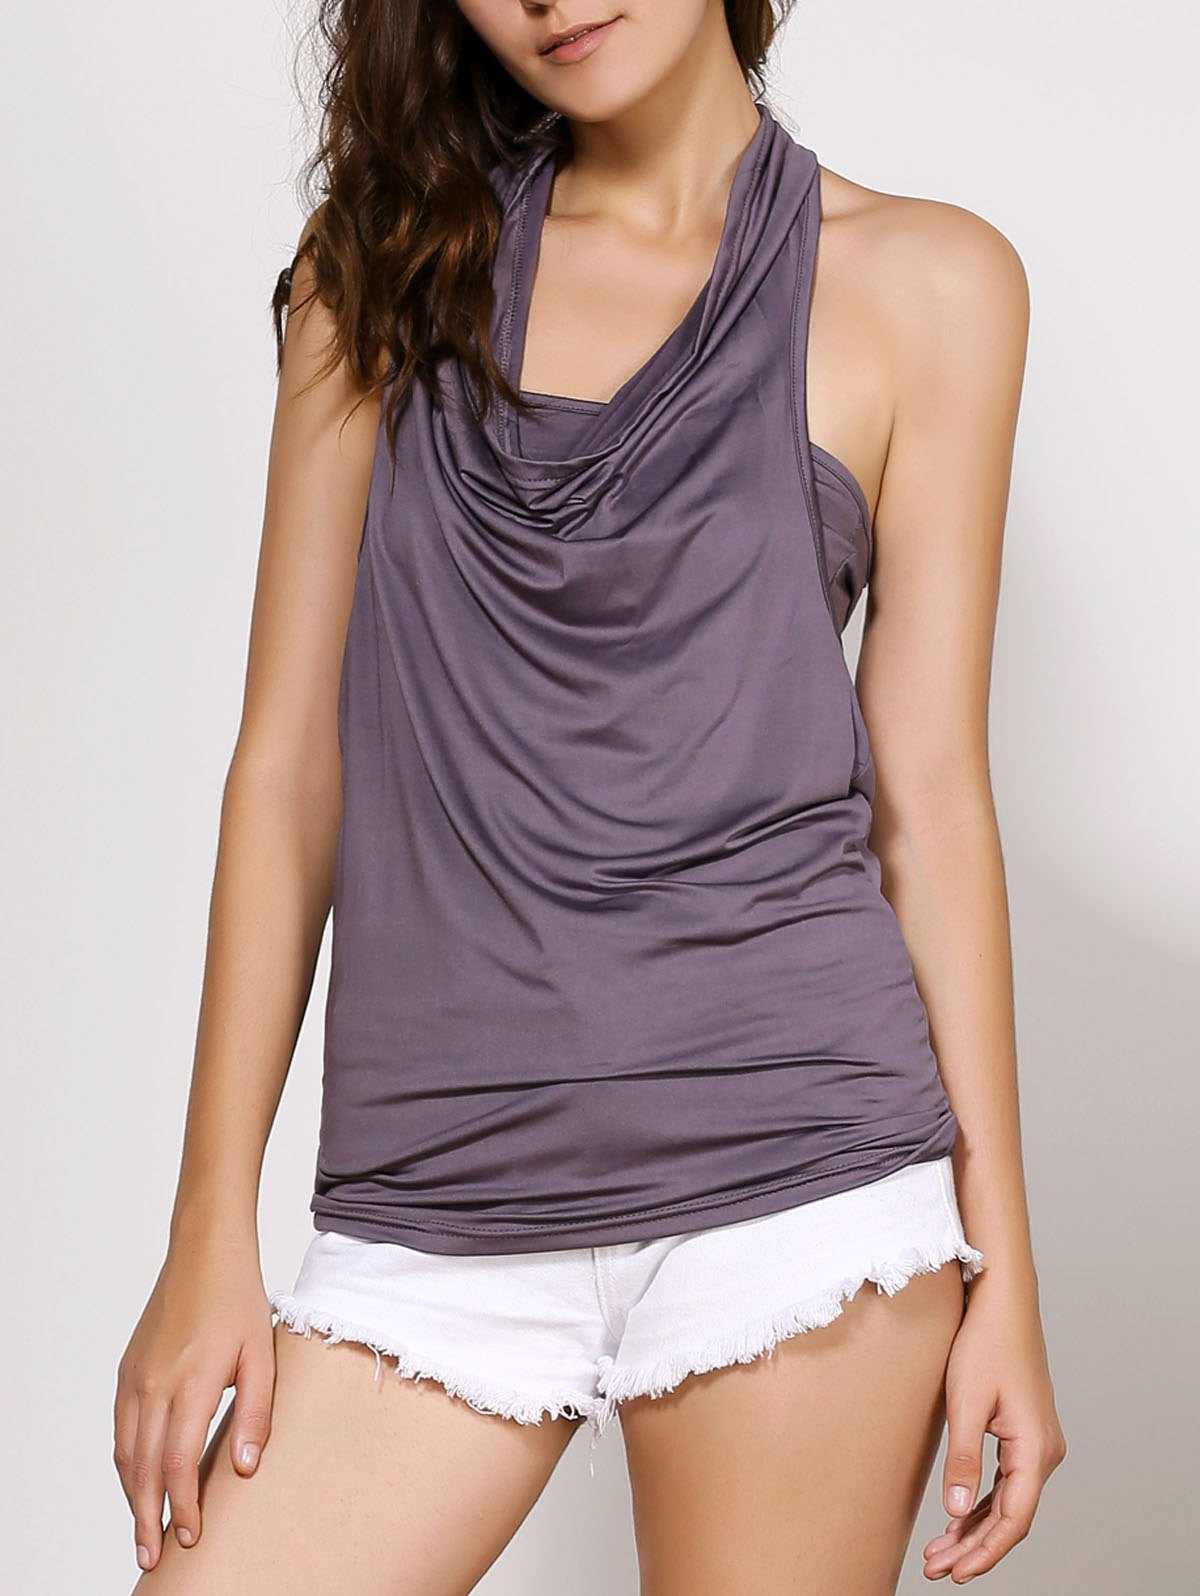 Cowl Neck Sleeveless Solid Color Backless T Shirt 132488420